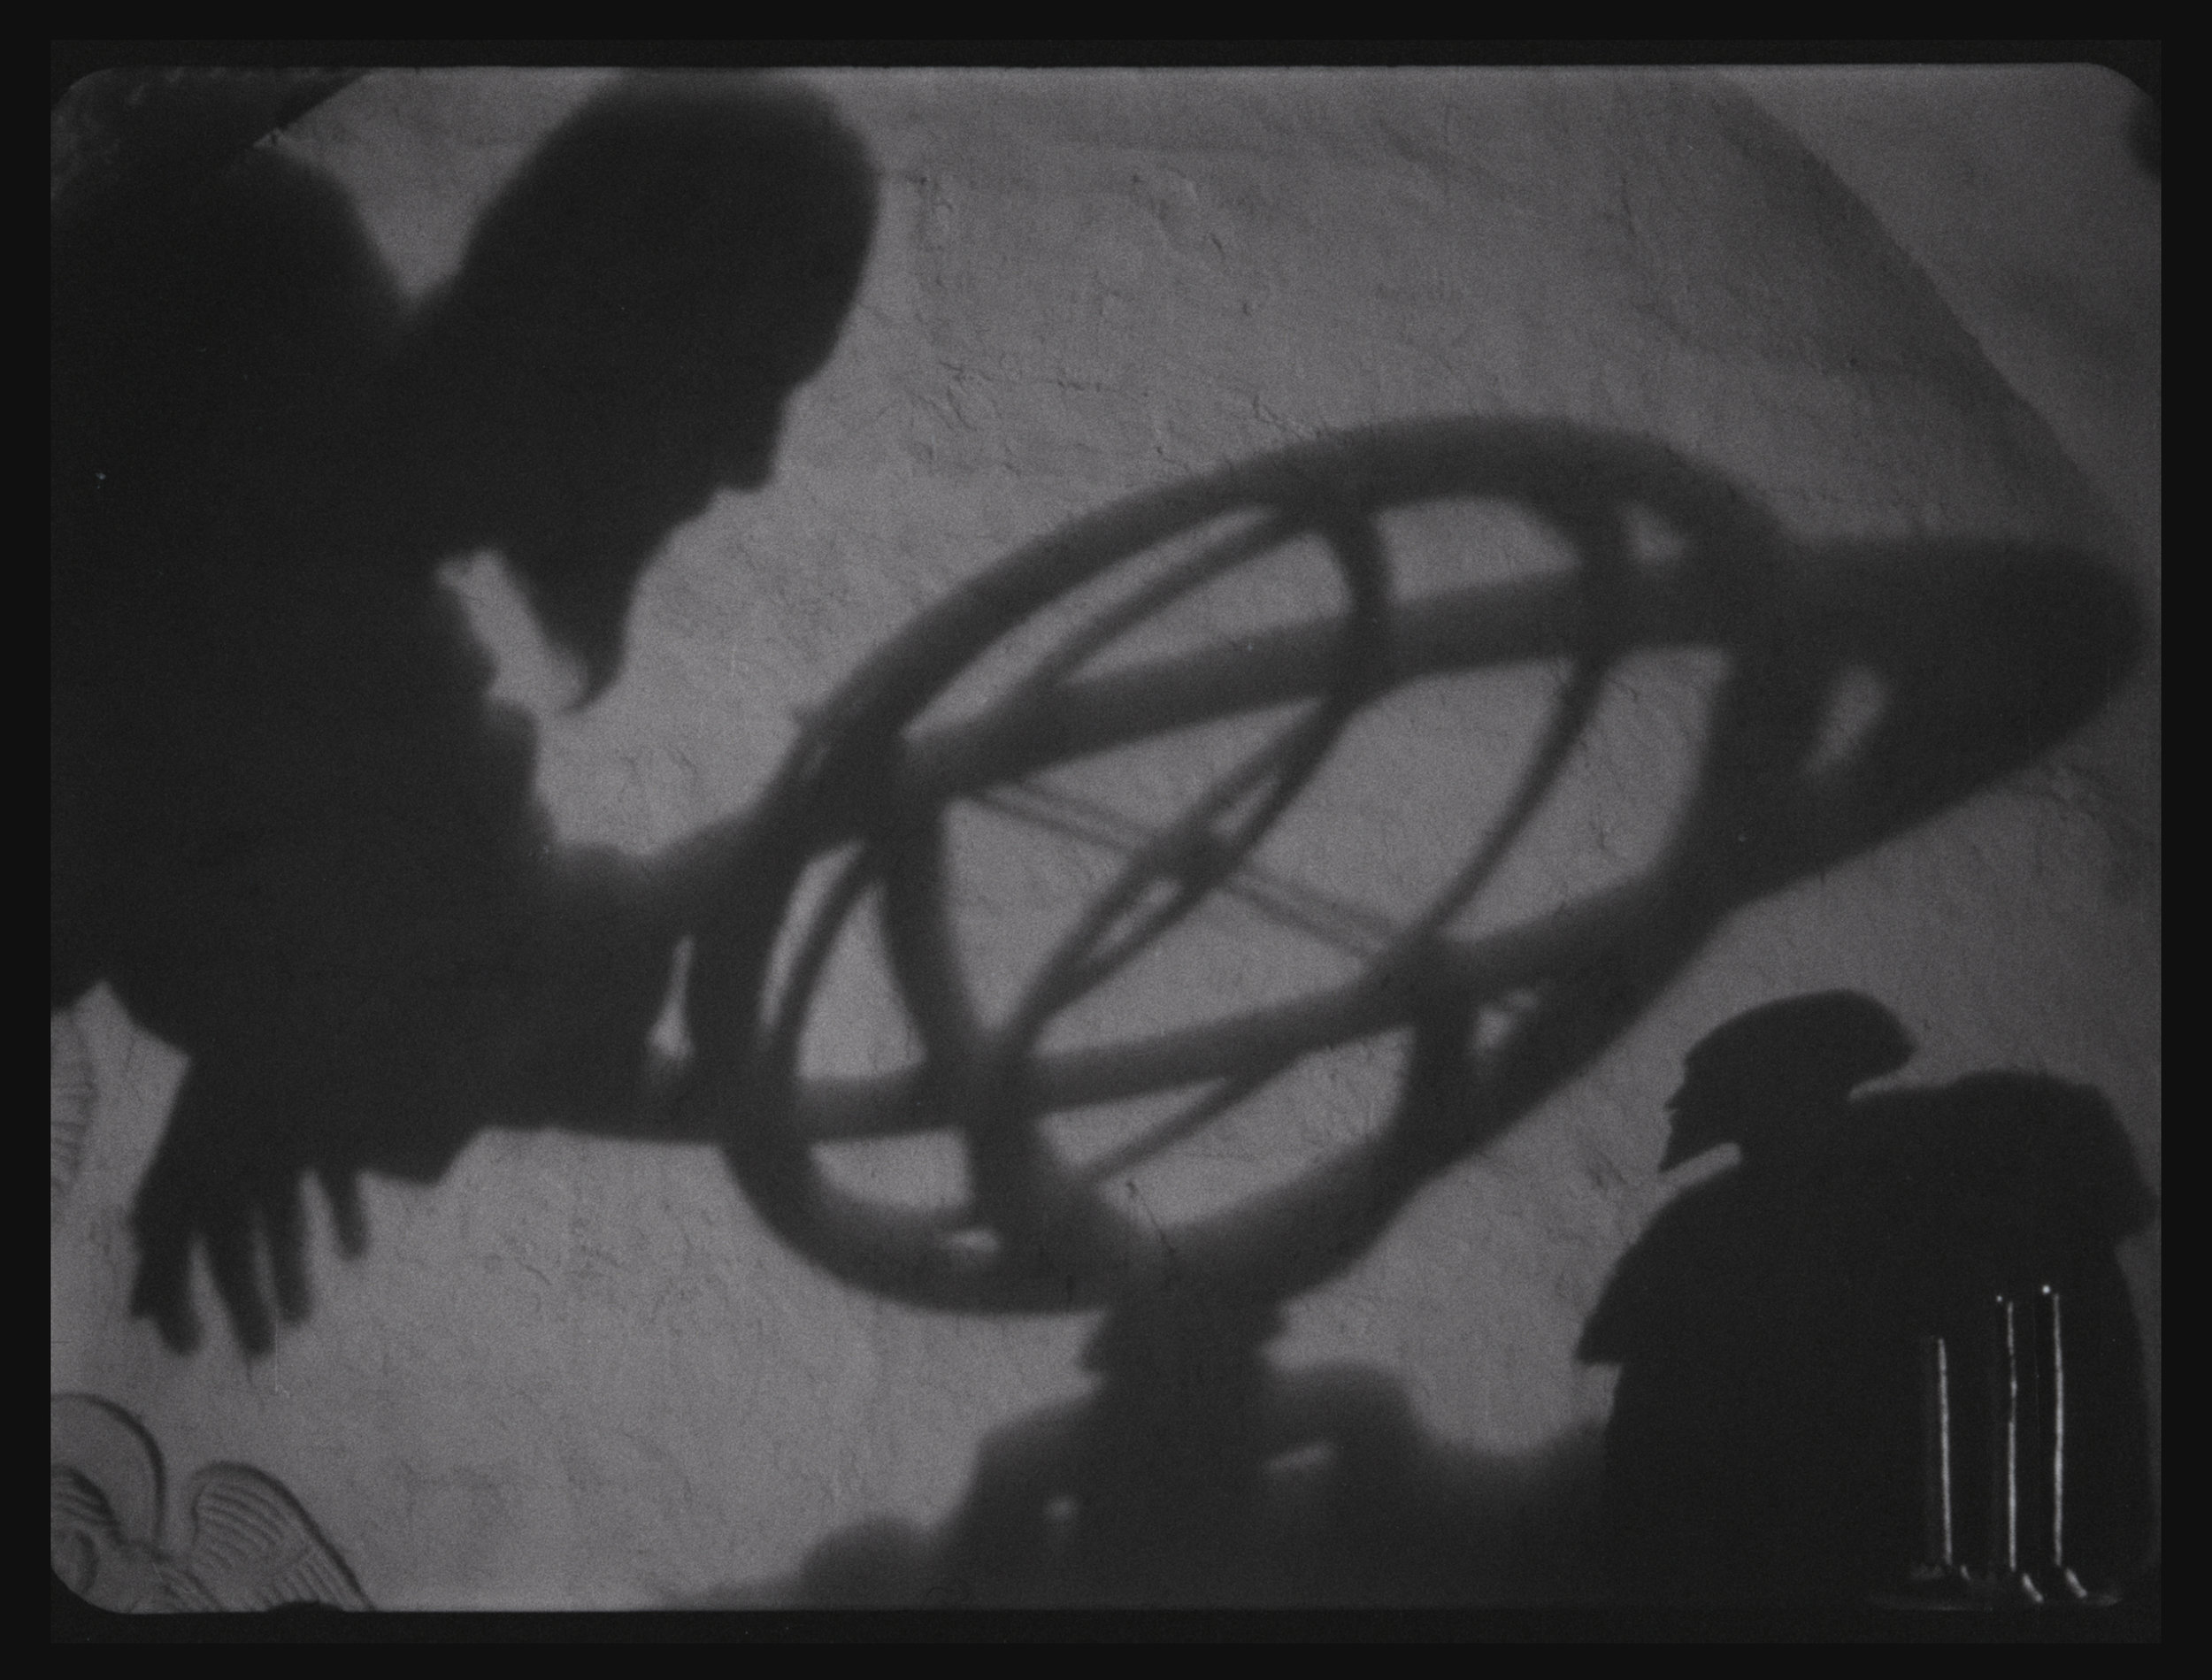 Sergei Eisenstein: Ivan the Terrible, USSR, 1944 (Still). Gosfilmofond of Russia, Moscow